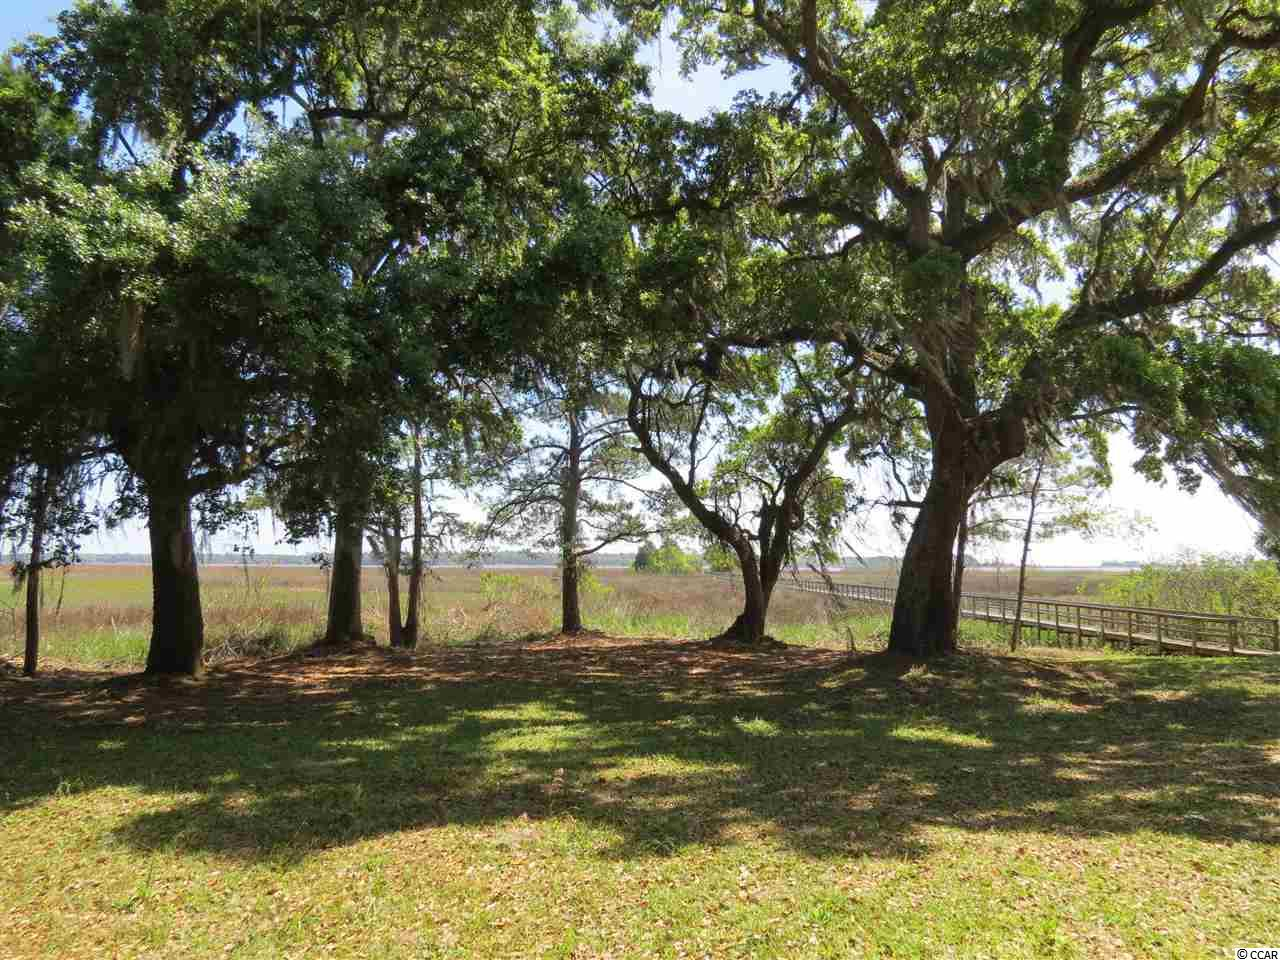 Whitehall Plantation, Georgetown. Gated Historic Plantation setting with only six 2+ acre home sites in the community. As you drive through the beautiful landscaped brick entrance and through the historic live oaks to the end of the road you will find this home site consisting of 18.7 acres with approx. 2 acres high ground and the balance in bay marsh with a navigable creek and dock. Beautiful views of the bay, Intracoastal Waterway, views of the Waccamaw River Bridge in the distance and views of Belle Isle Marina. Whitehall Plantation offers a community boardwalk out into Winyah Bay with a floating dock.